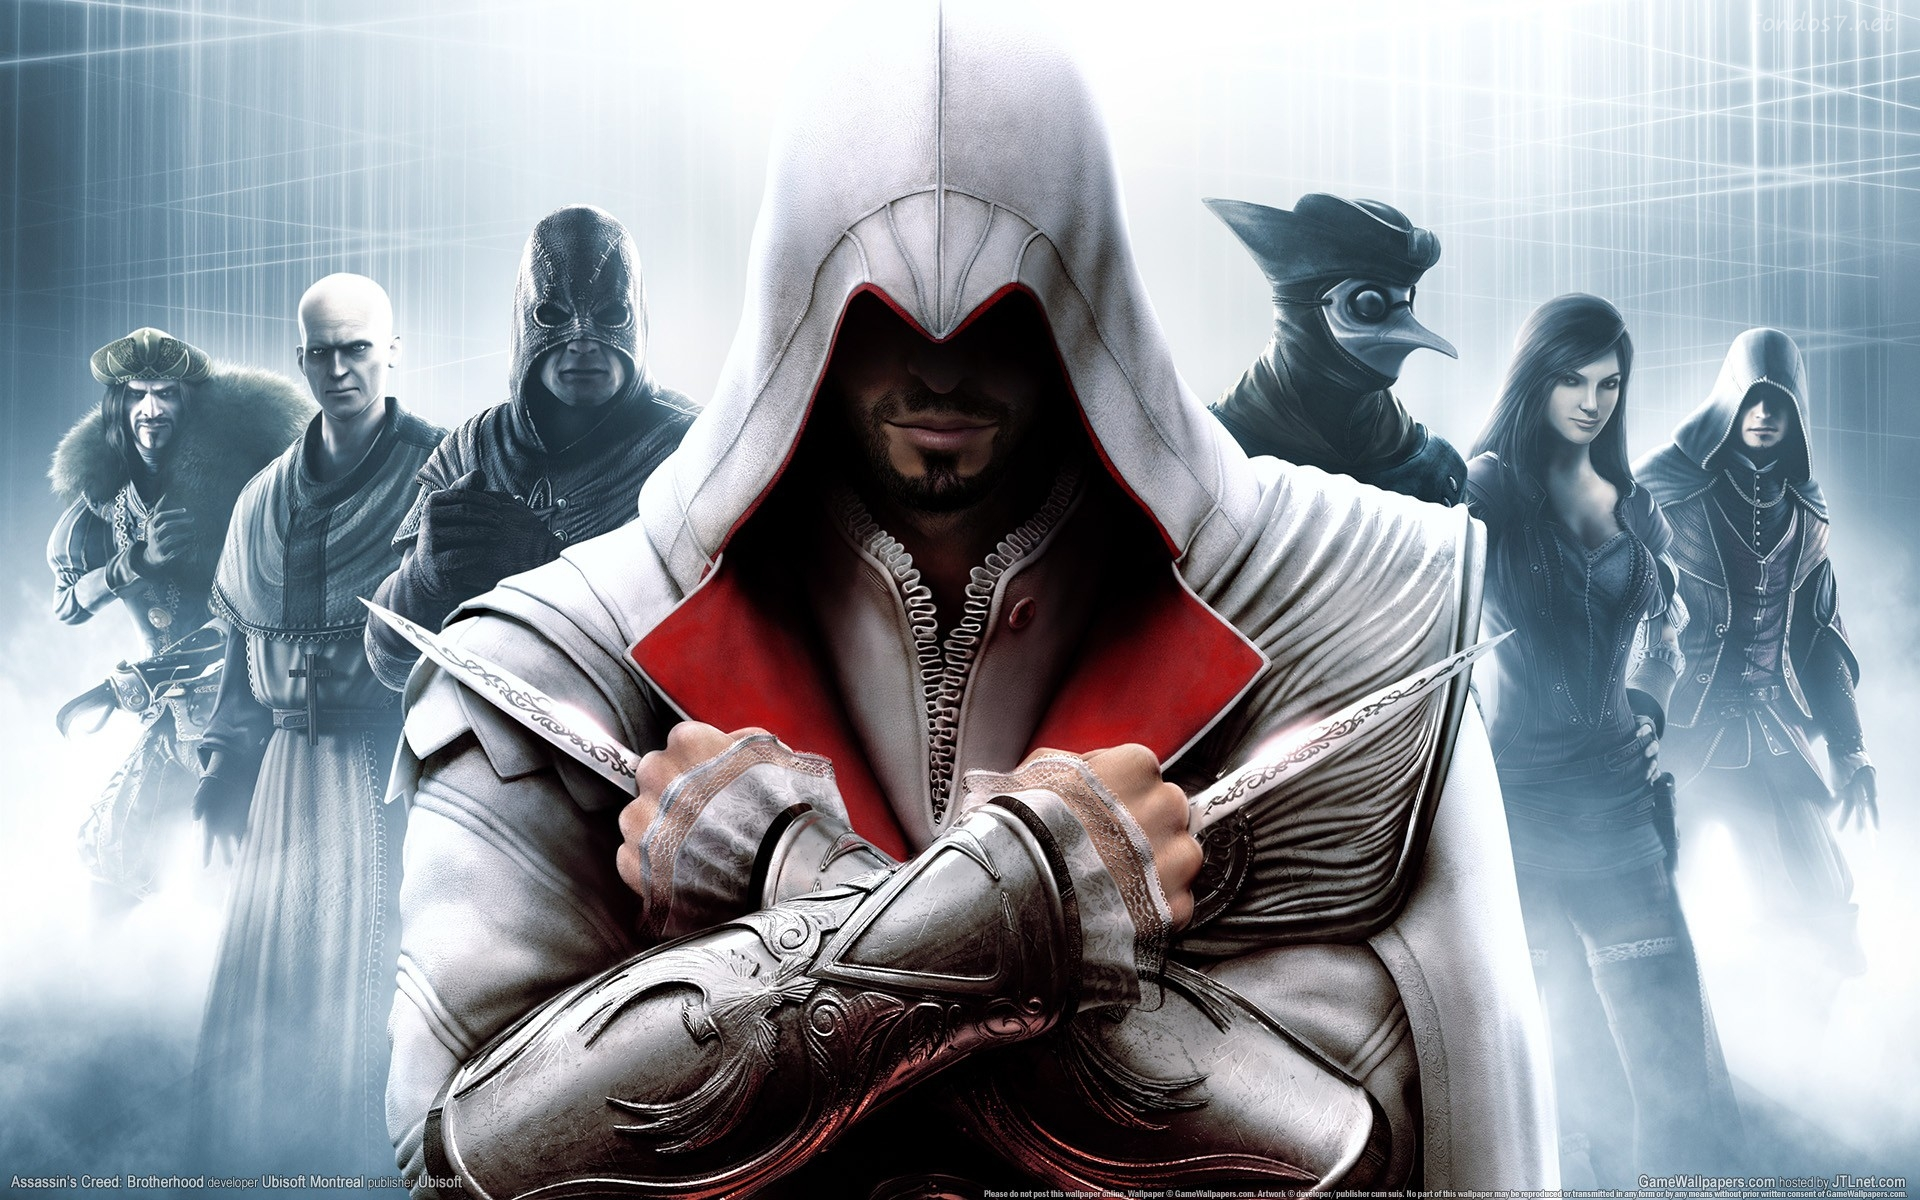 Ubisoft says the 'Assassin's Creed' movie will be like 'Batman Begins'